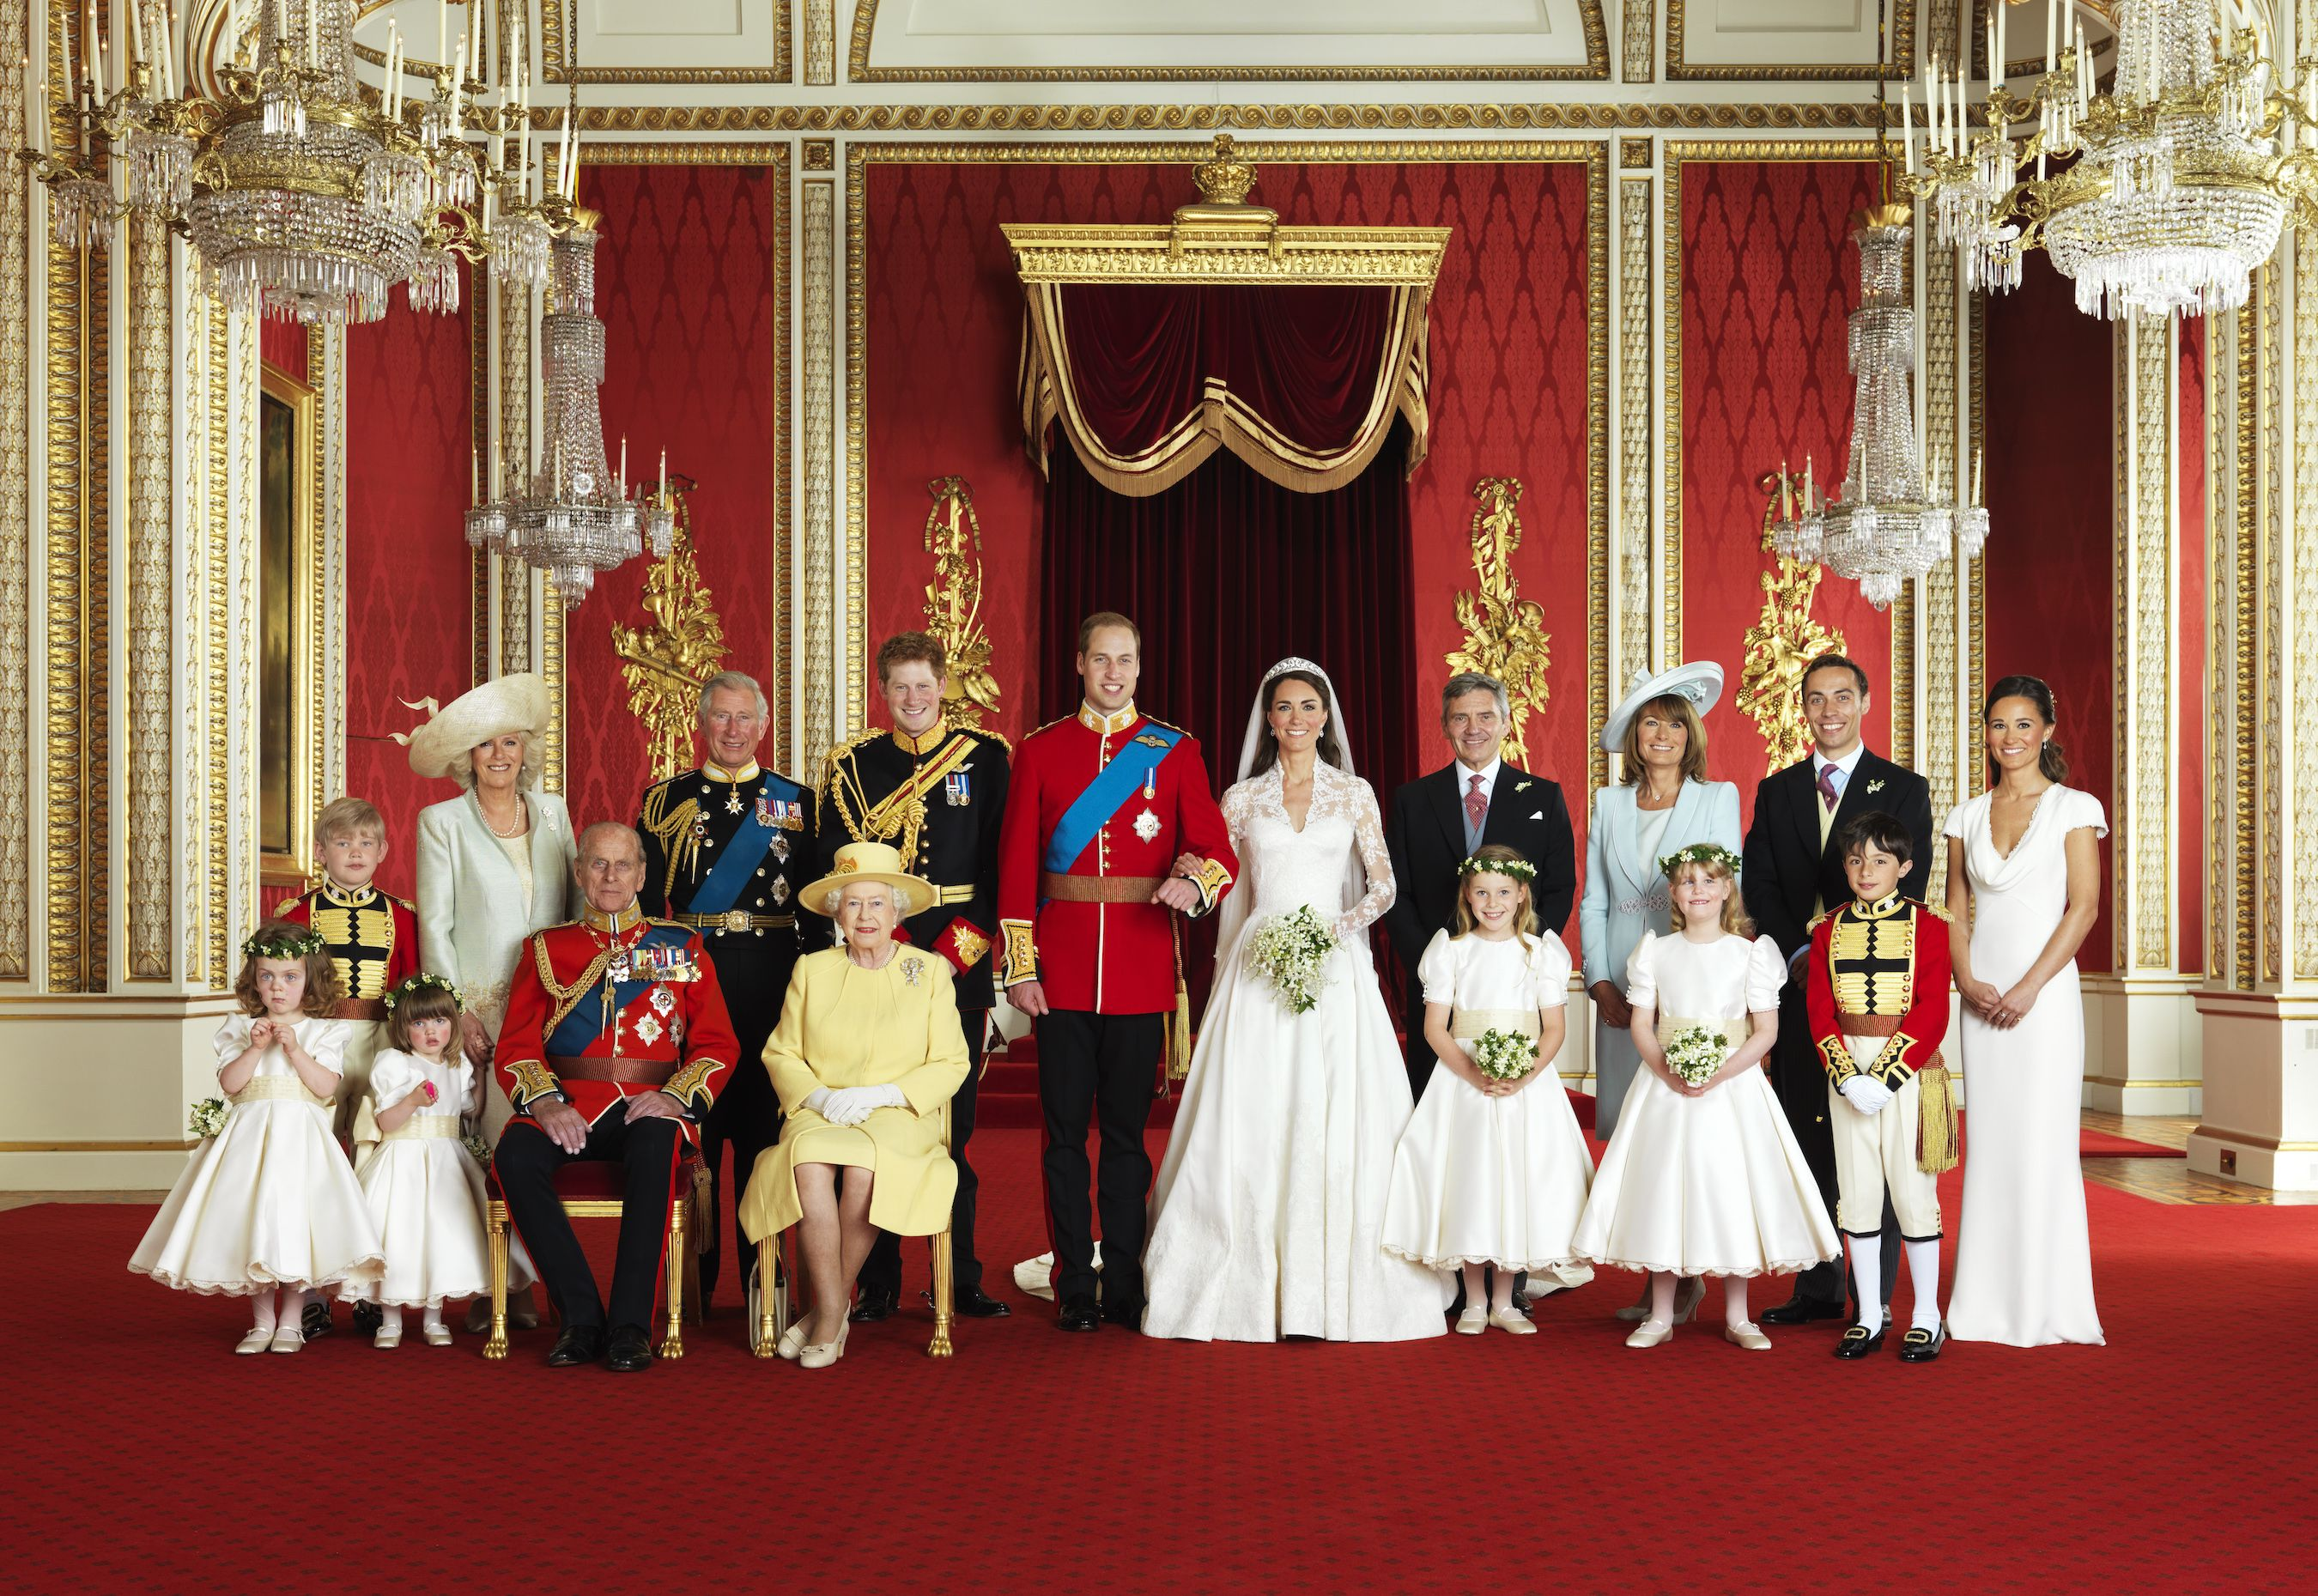 Kate Middleton Prince William Wedding Photos Royal Wedding 2011